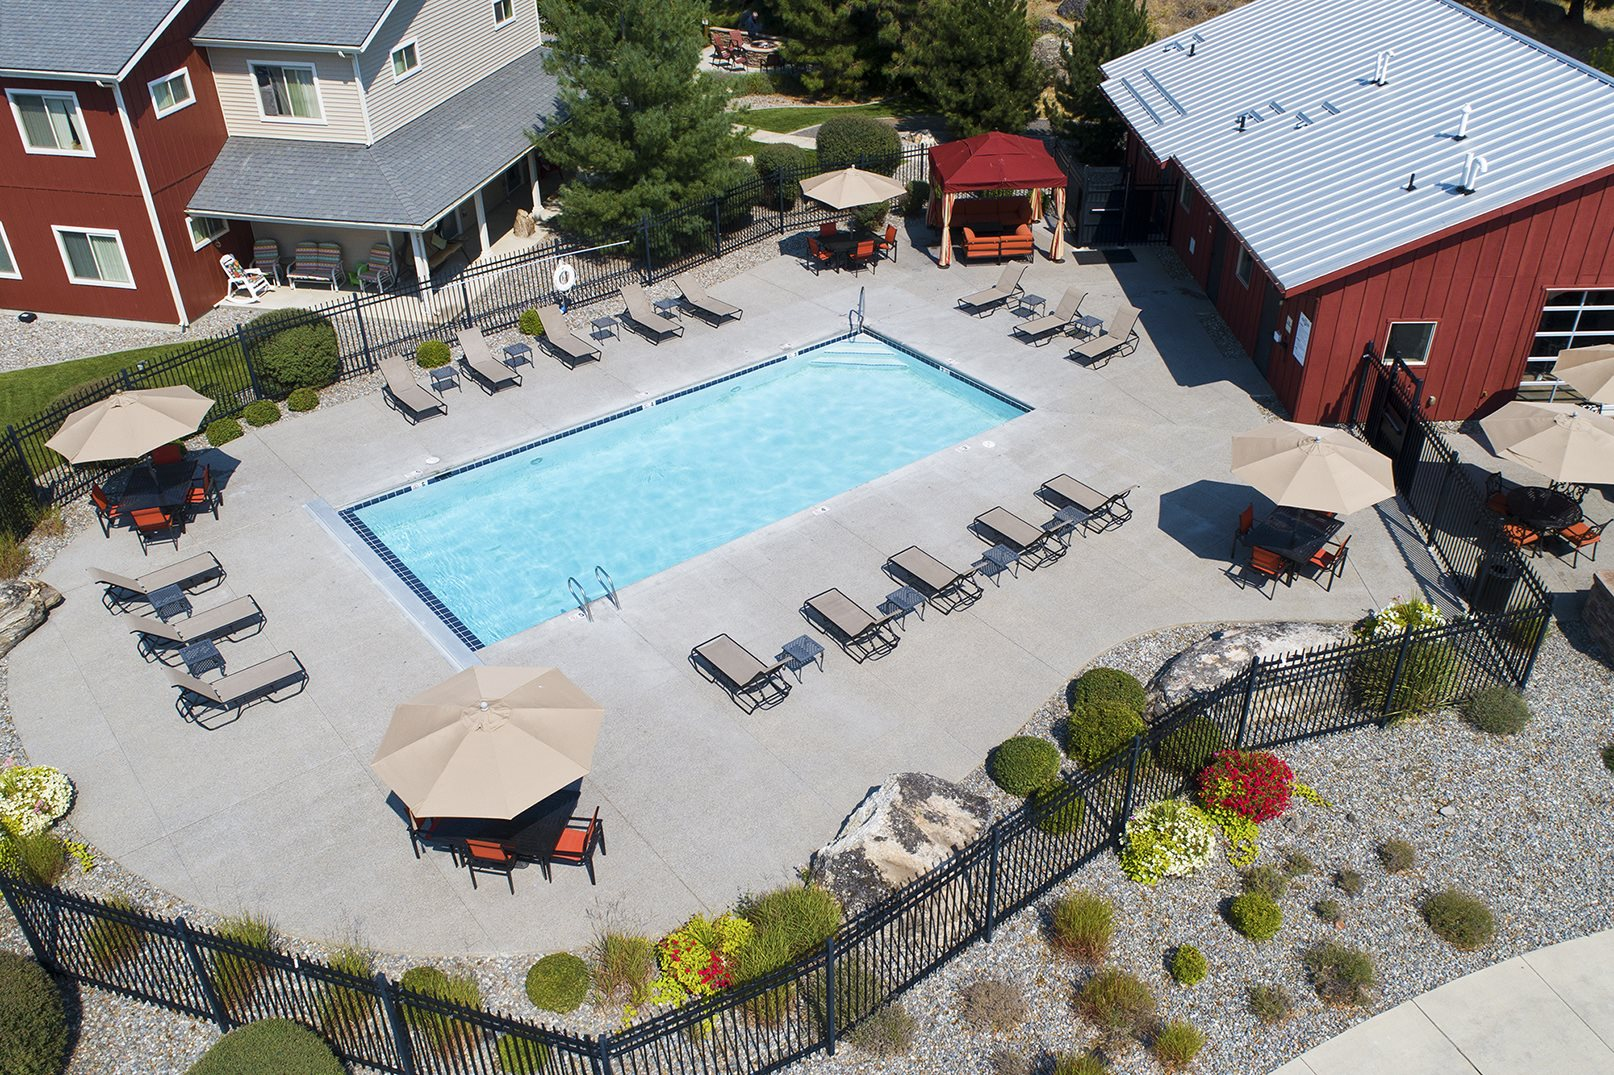 Pine Valley Ranch Apartments Aerial View